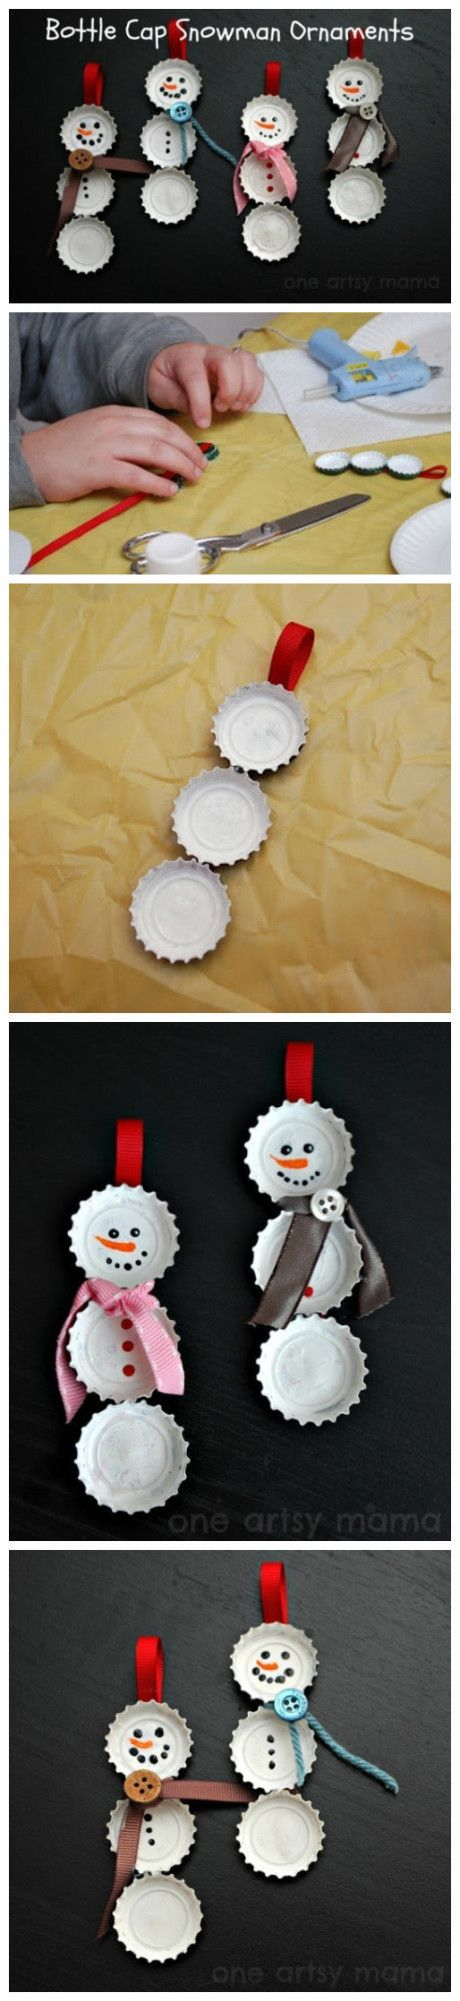 Paint the inside of bottle caps white and then decorate. For nursing home residents - make sure bottle caps are not sharp!